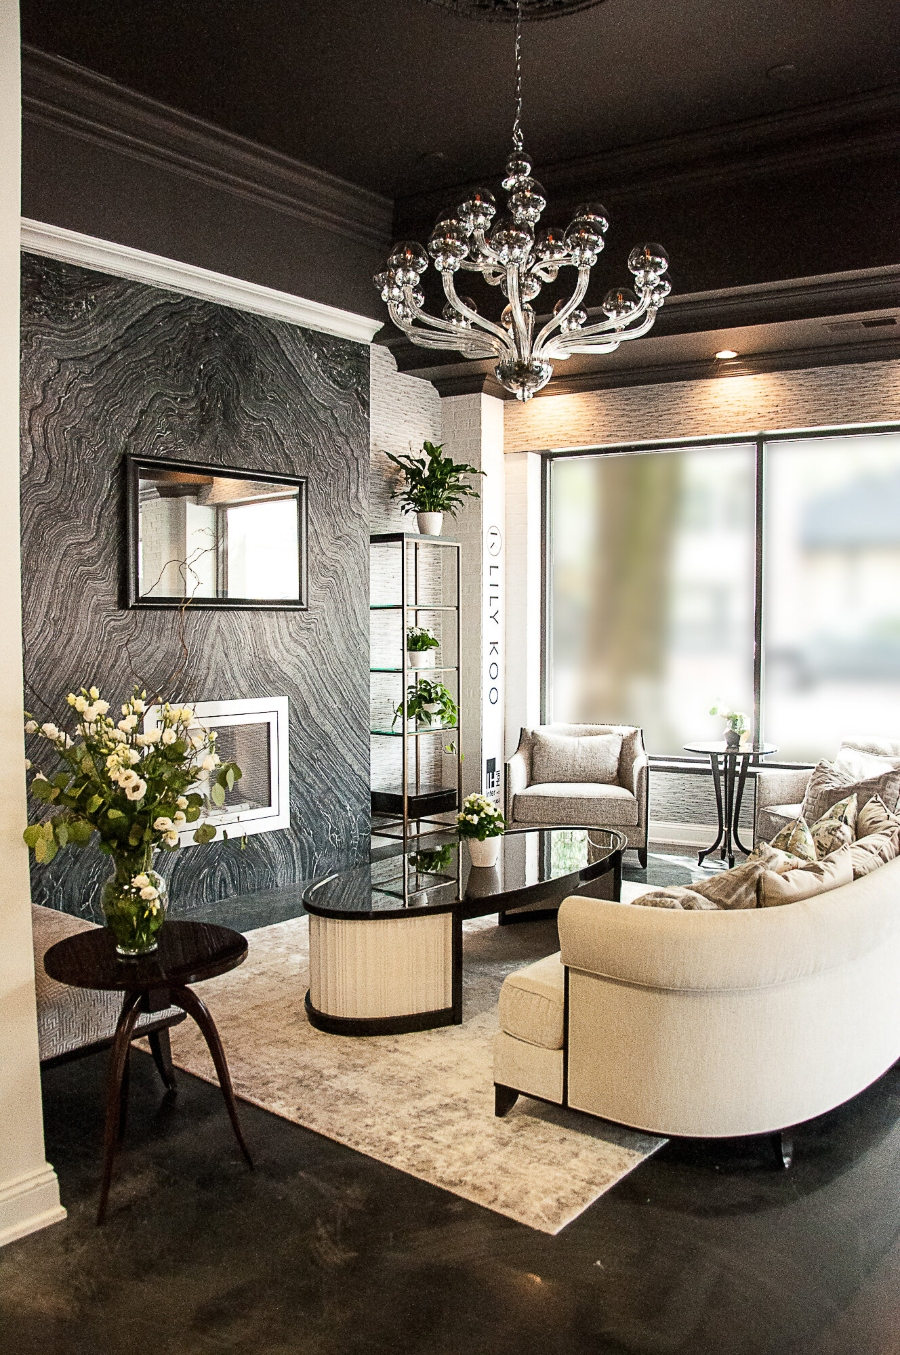 Furniture Showrooms in New Jersey You Can't Miss showrooms Furniture Showrooms in New Jersey You Can't Miss Furniture Showrooms in New Jersey You Can   t Miss 11